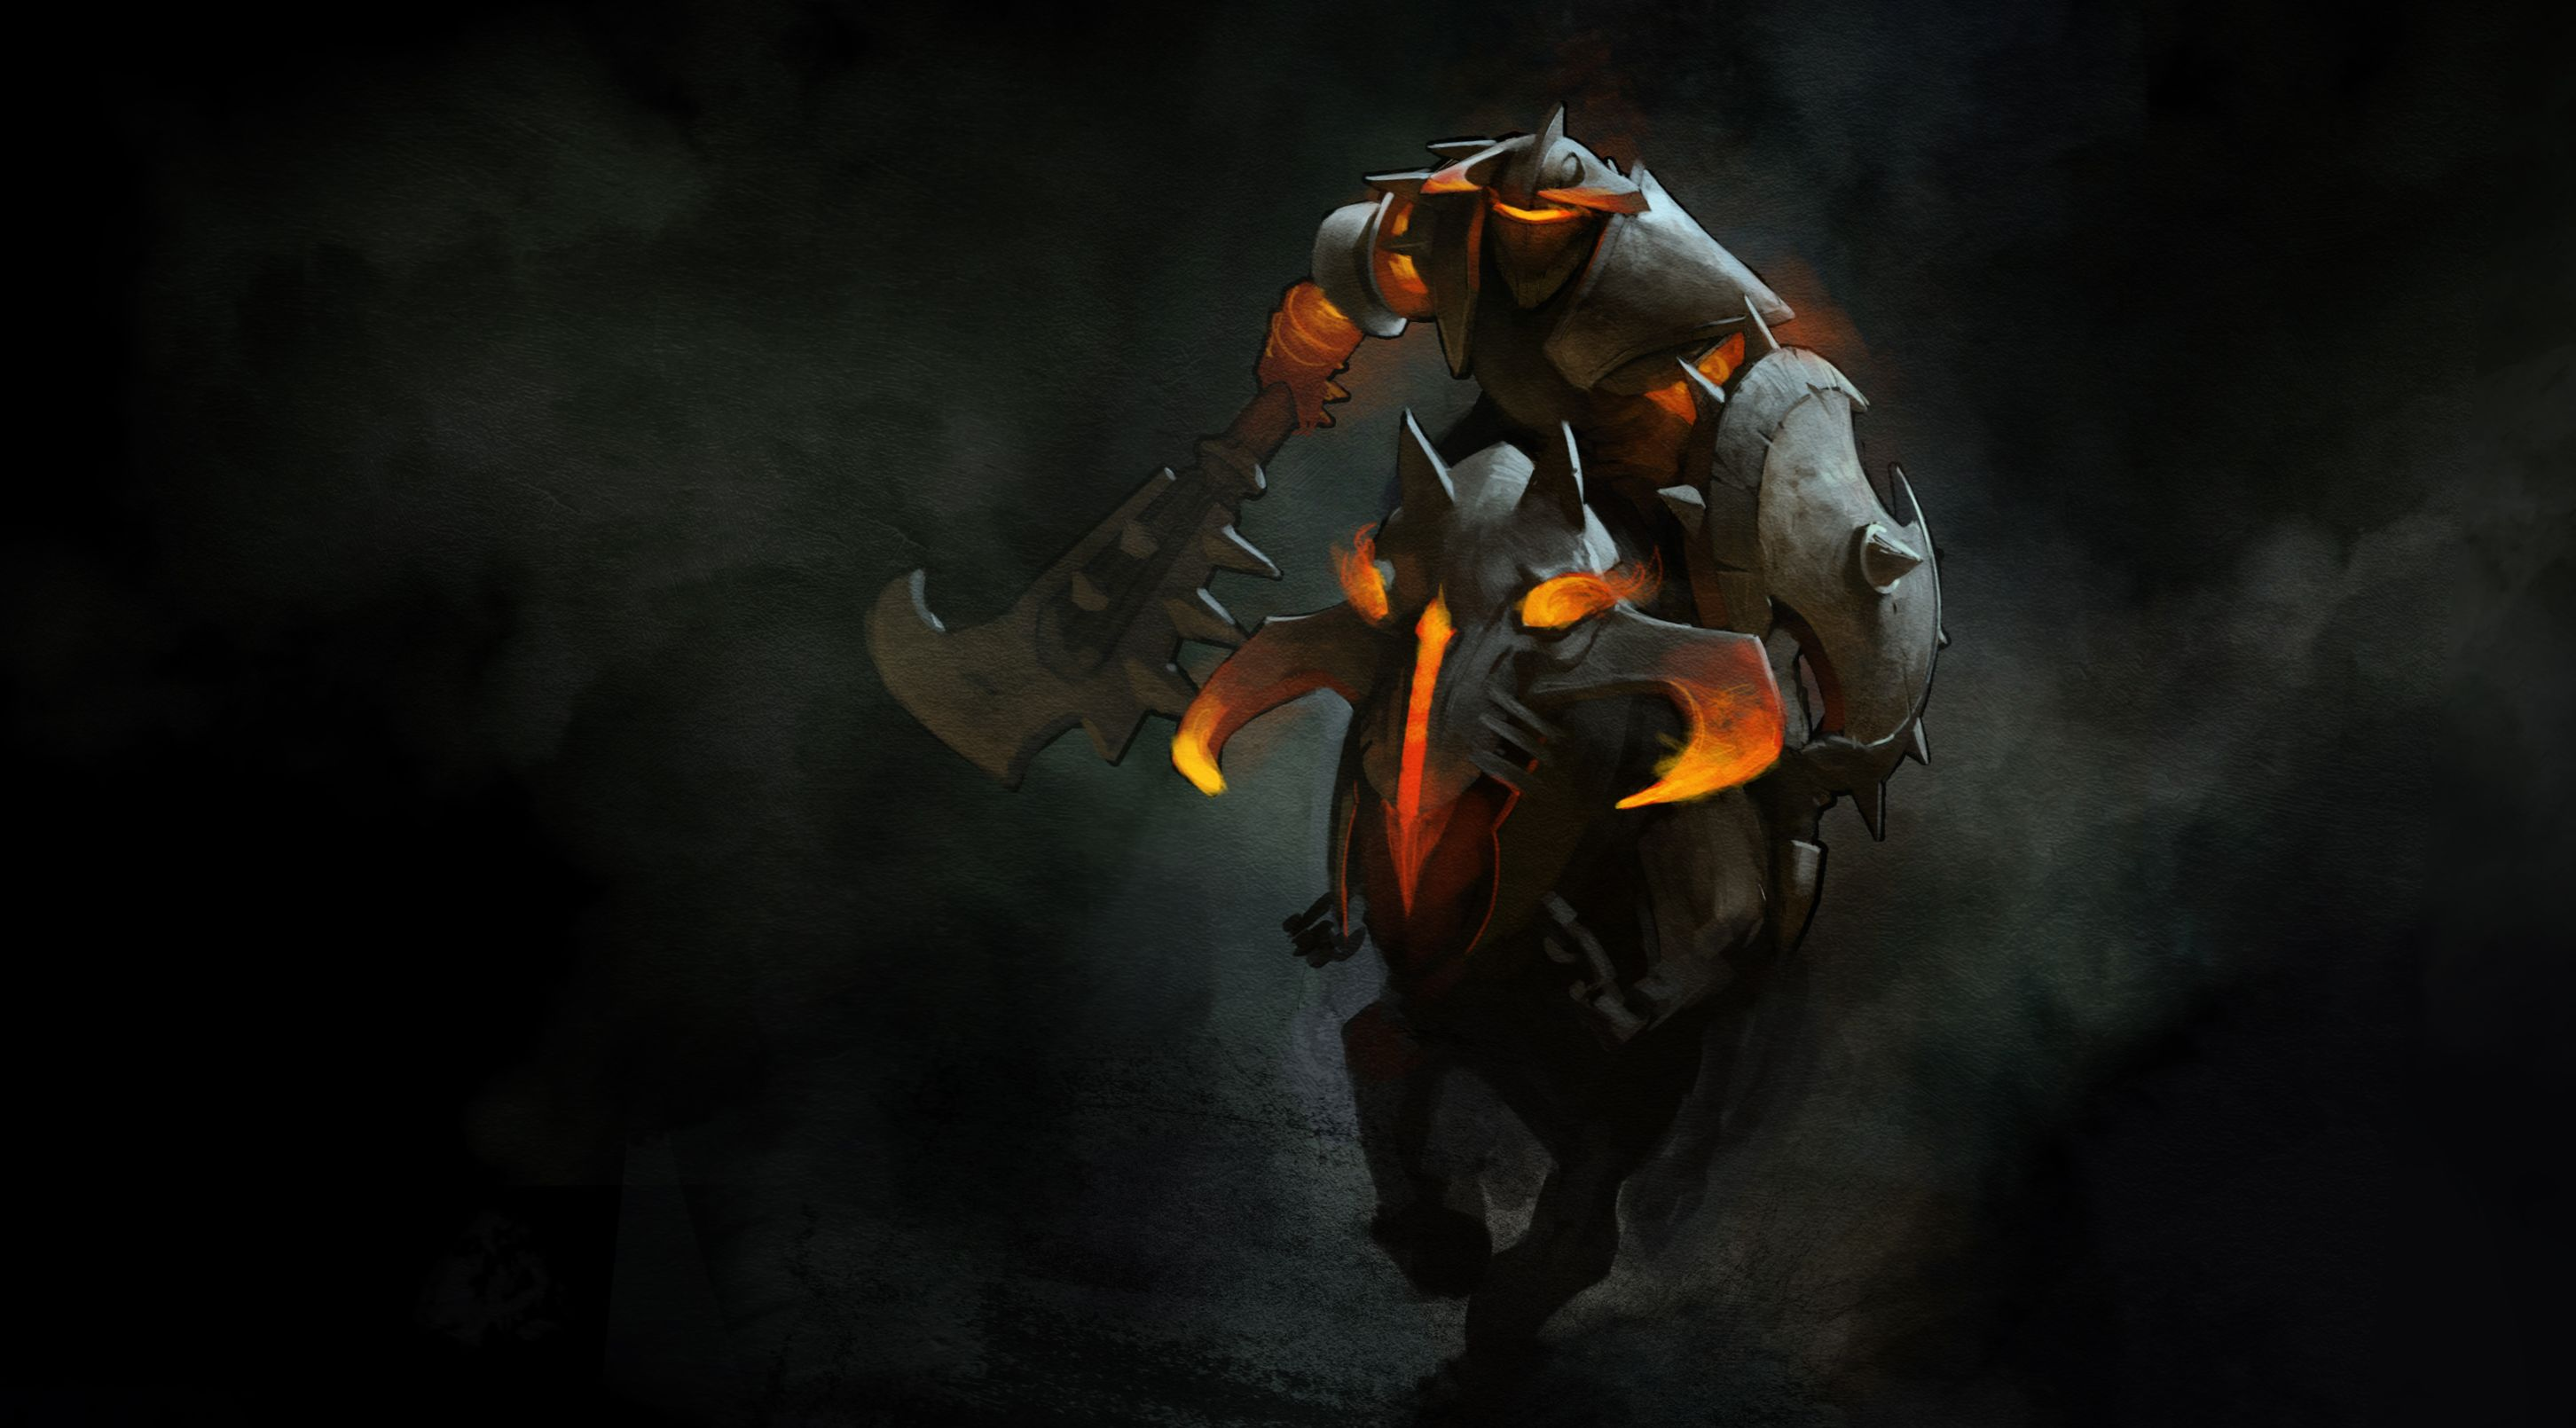 Chaos Knight Wallpapers Dota 2 HD Wallpapers